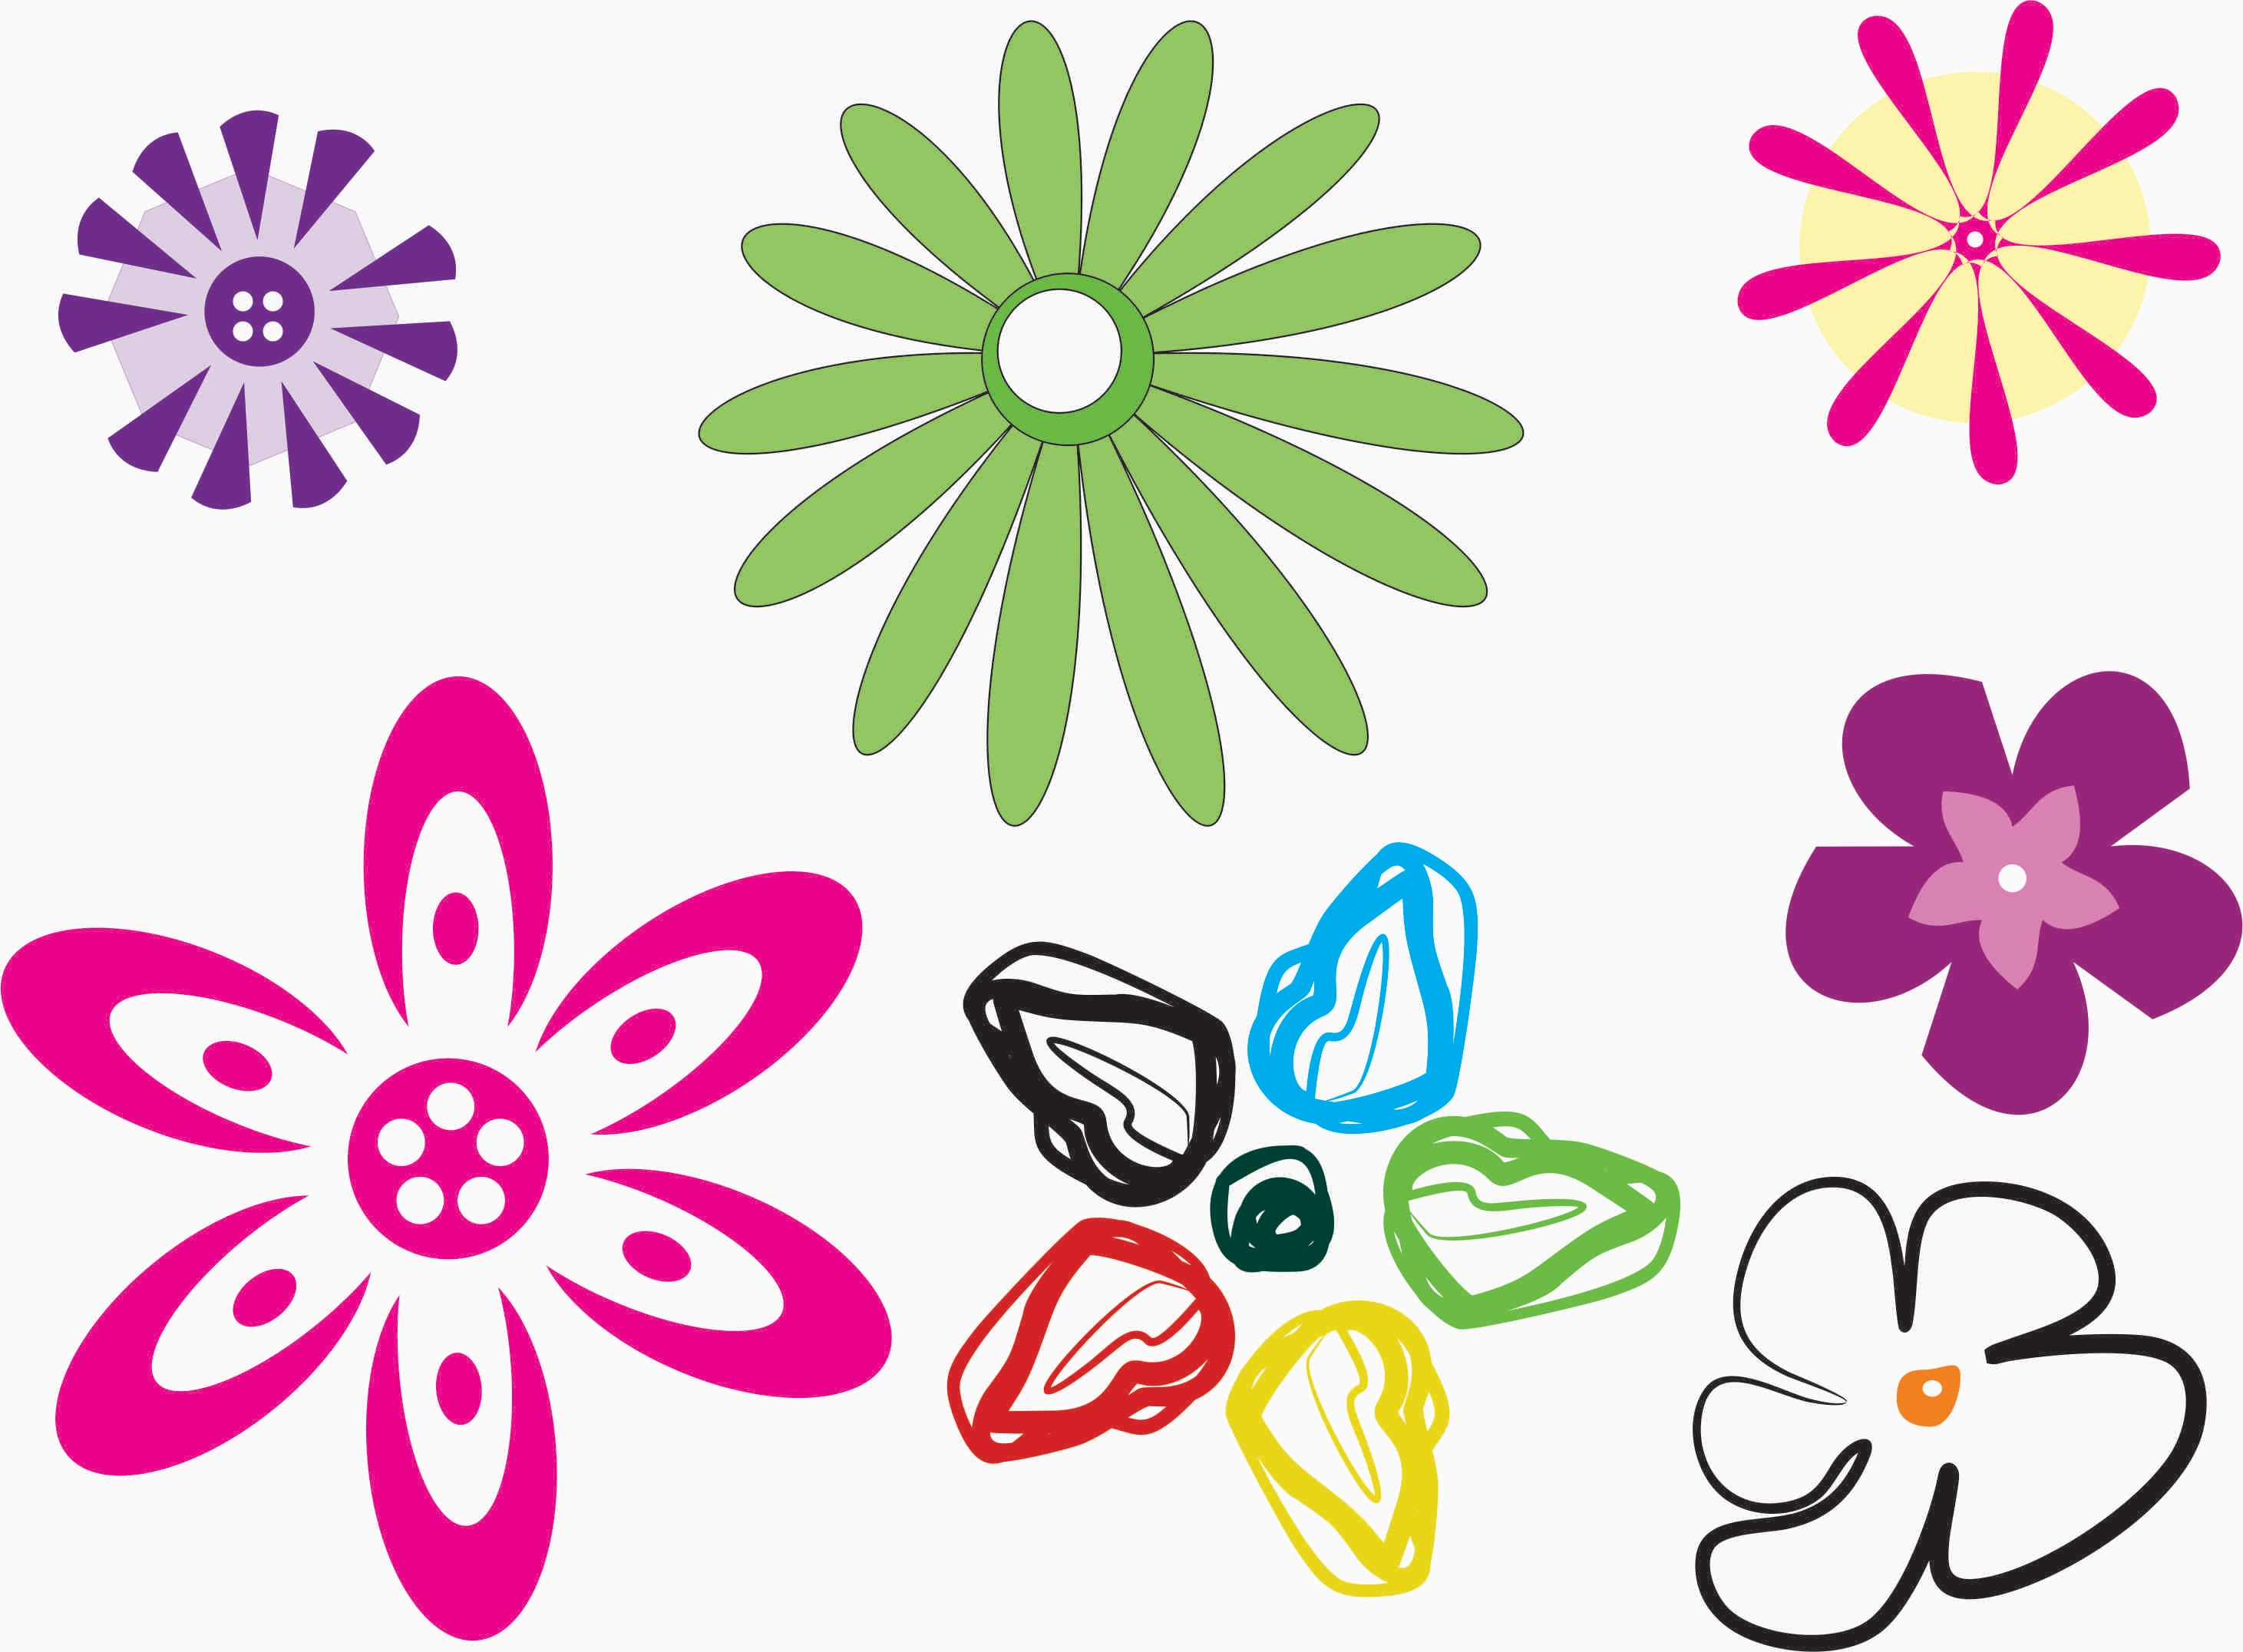 17 Best images about Corel draw on Pinterest.